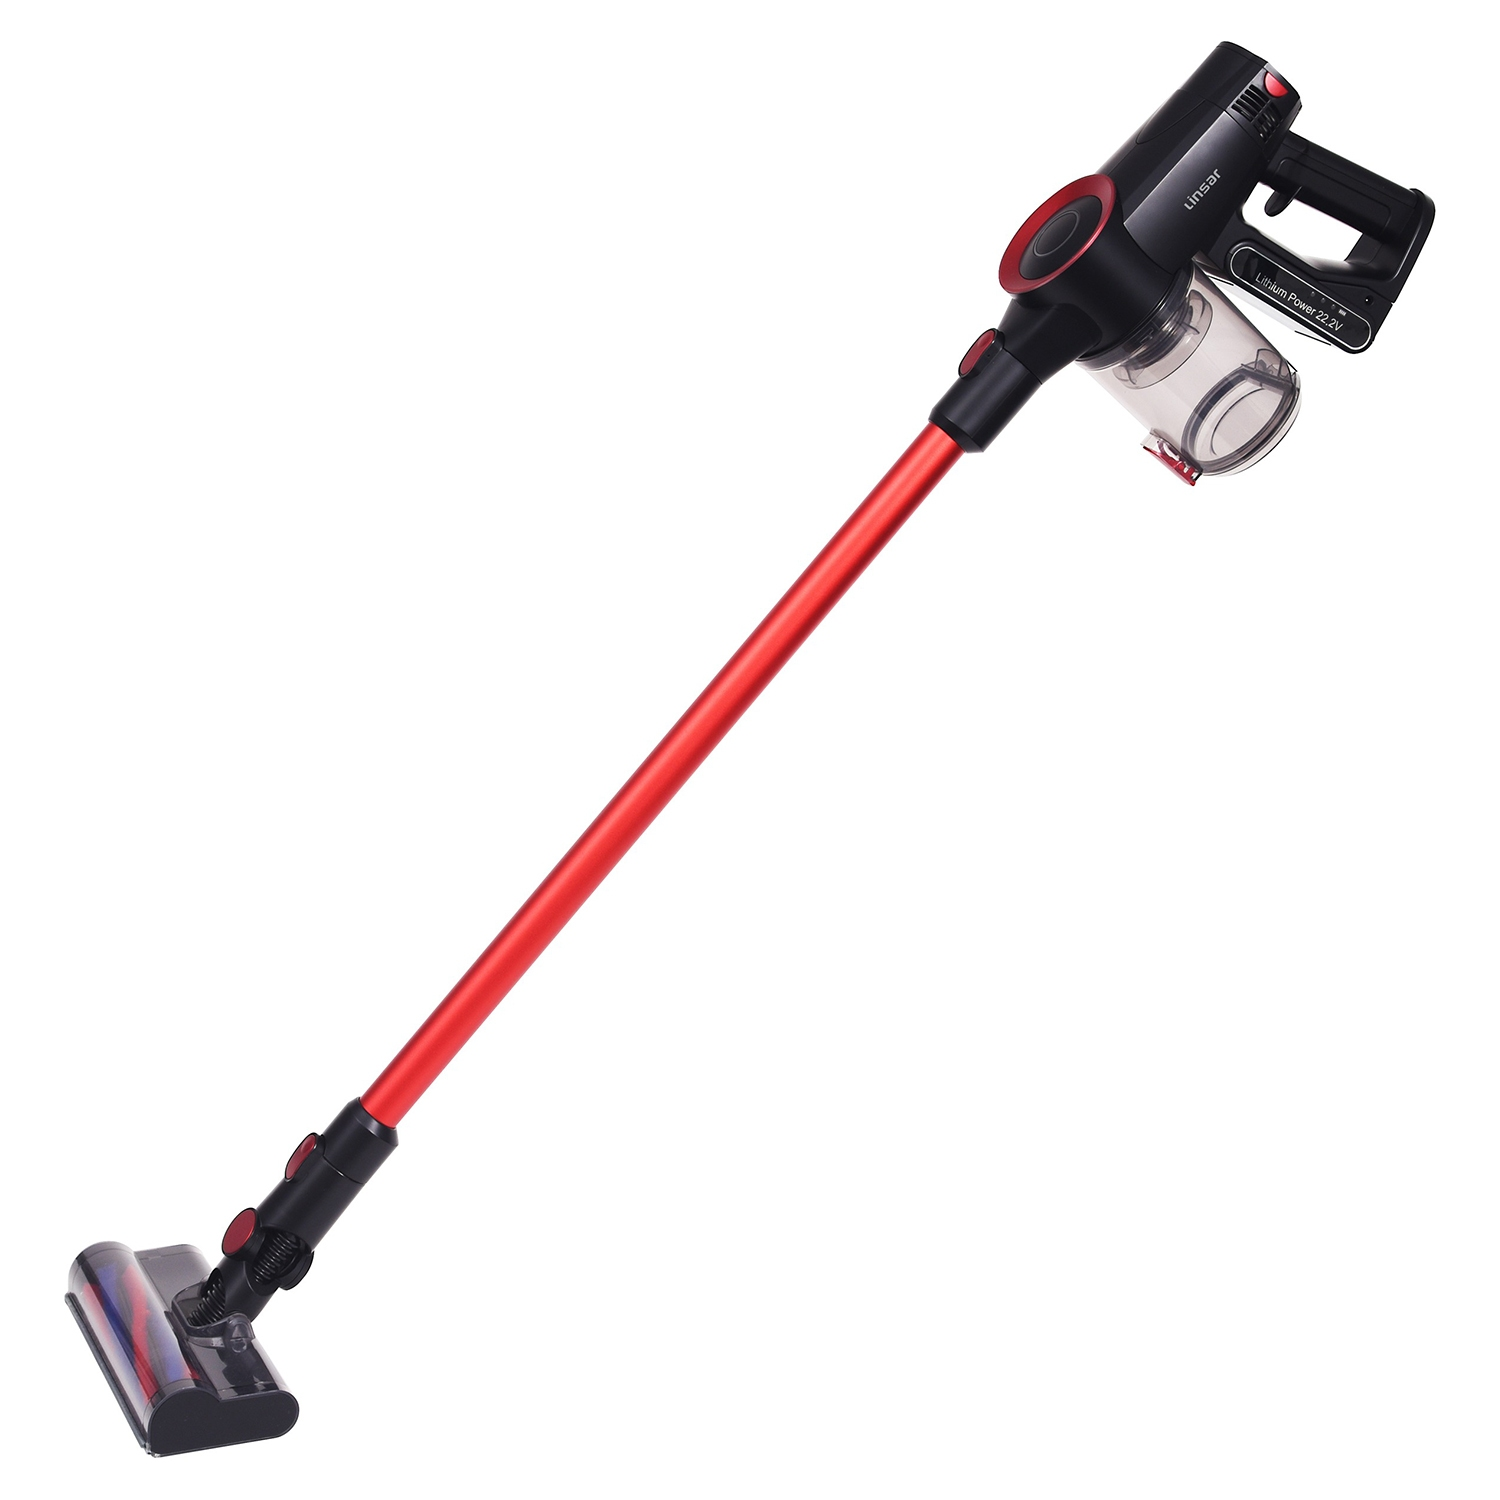 Linsar 2 in 1 Cordless Vacuum Cleaner - 40 Minute Run Time - 0